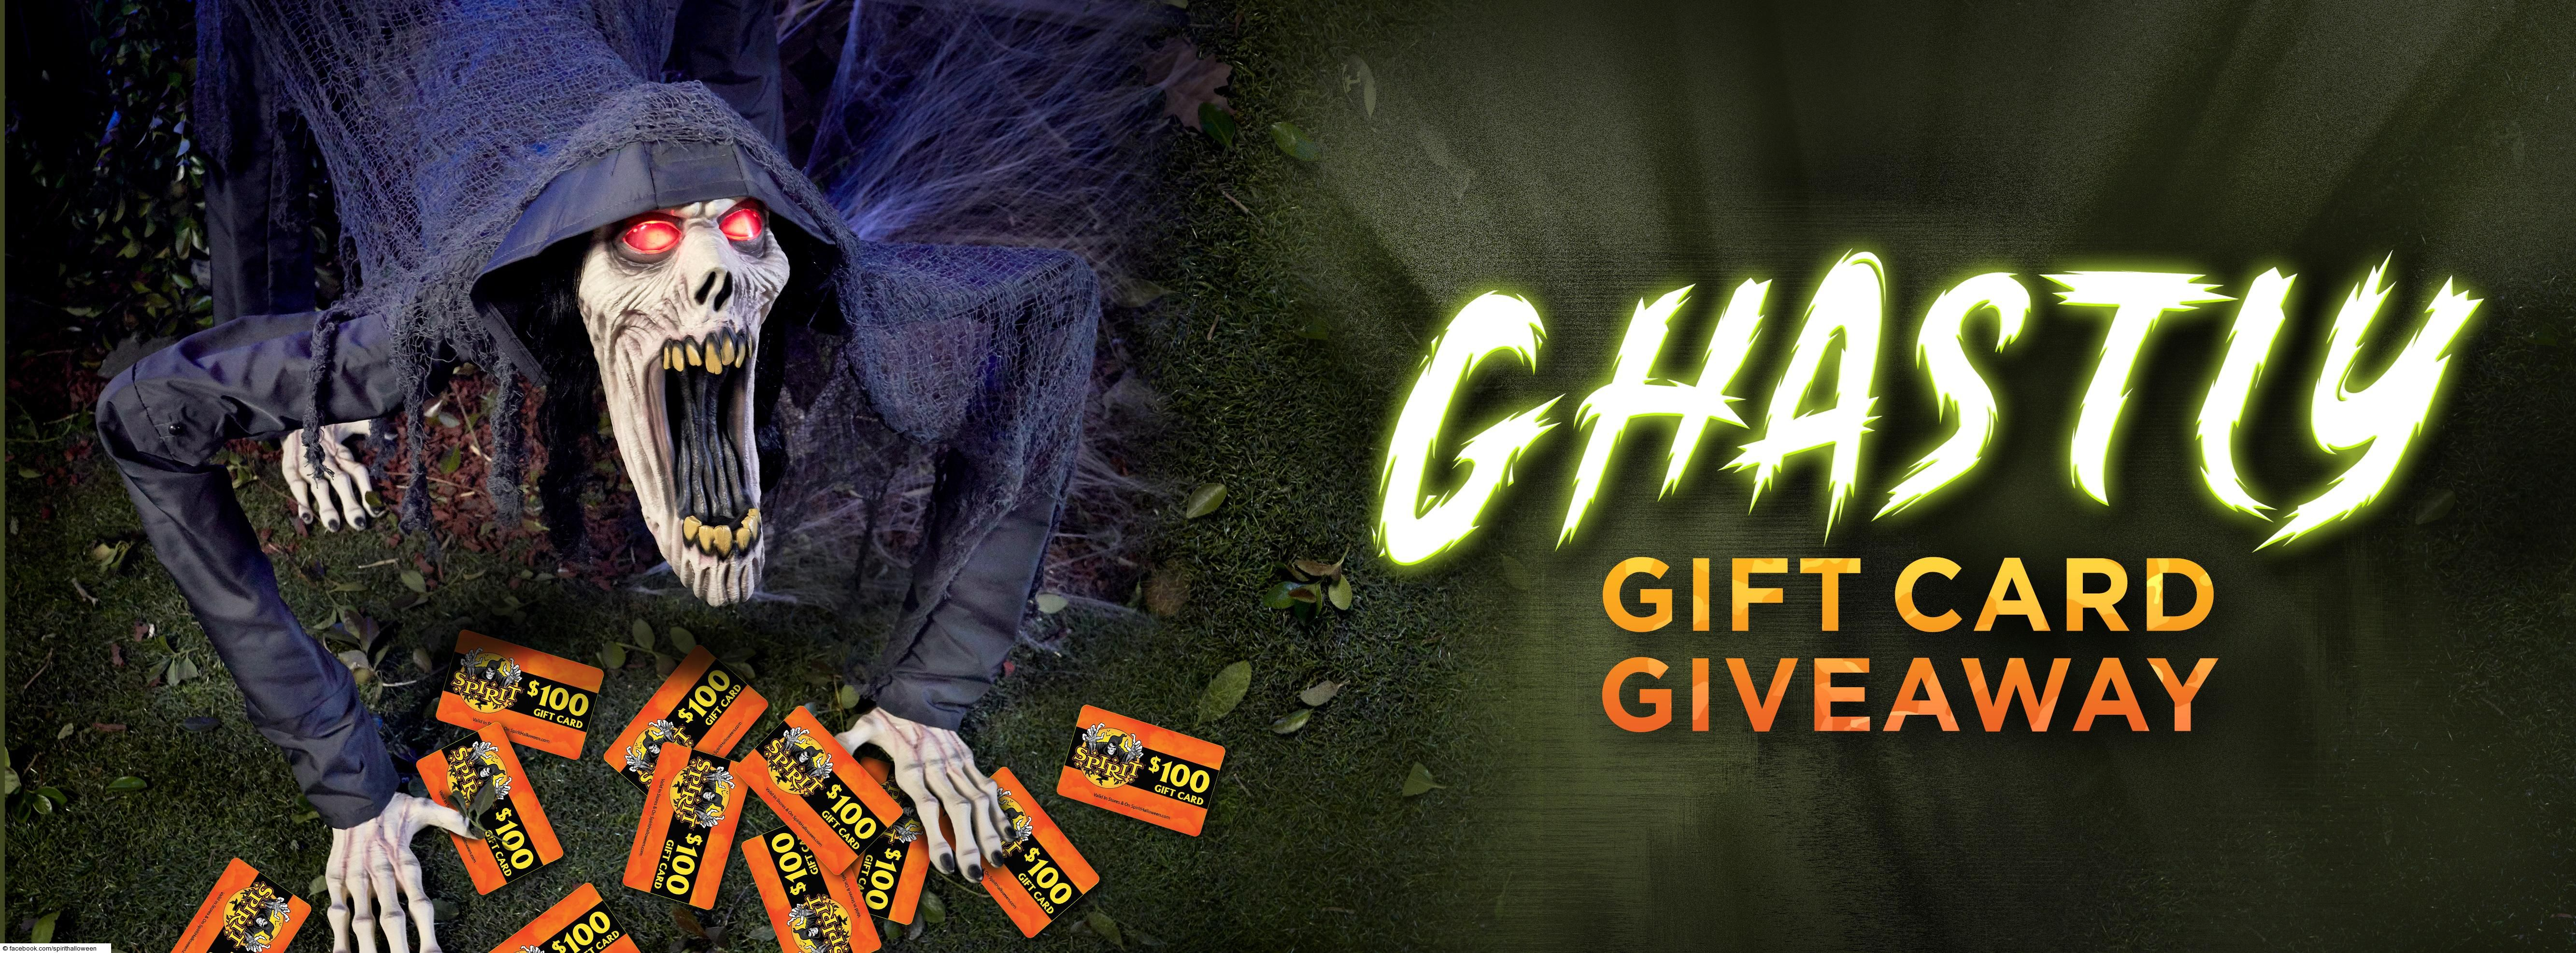 Ghastly Gift Card Giveaway in 2020 Gift card giveaway